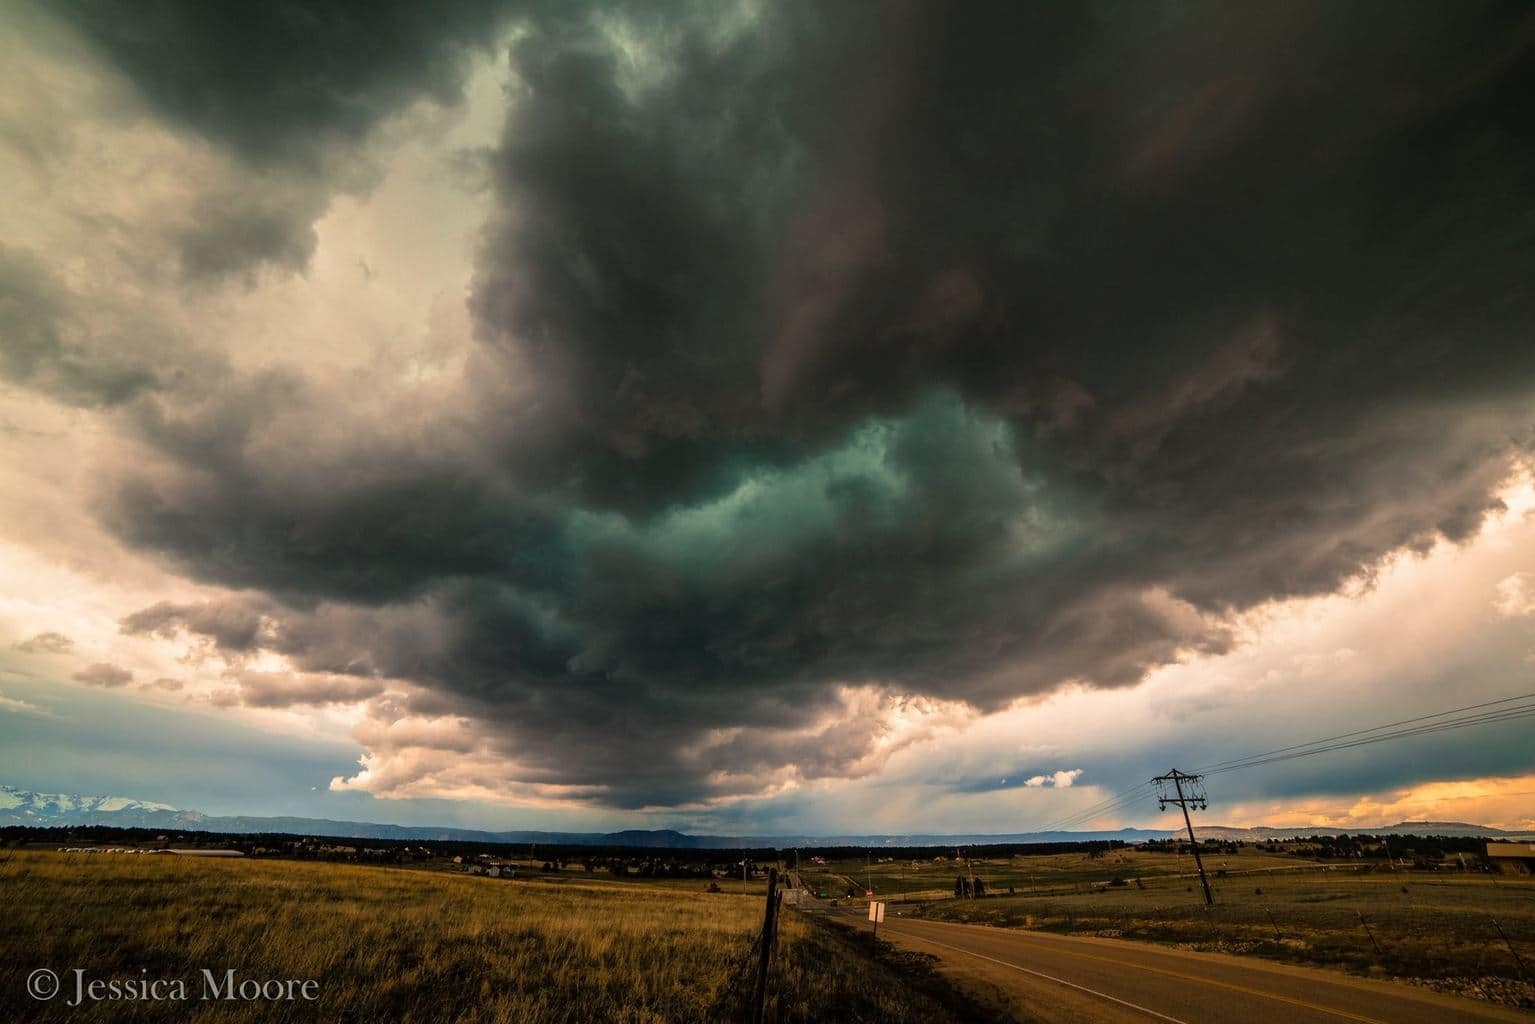 Very quick edit from yesterday, just north of Black Forest, CO. I believe a small funnel was spotted but no confirmed touchdowns. Had fun playing in little marble-sized hail before going to work! Also may or may not have sliced my arm on the barbed wire fence to get this shot... 5/1/15 - Black Forest, CO